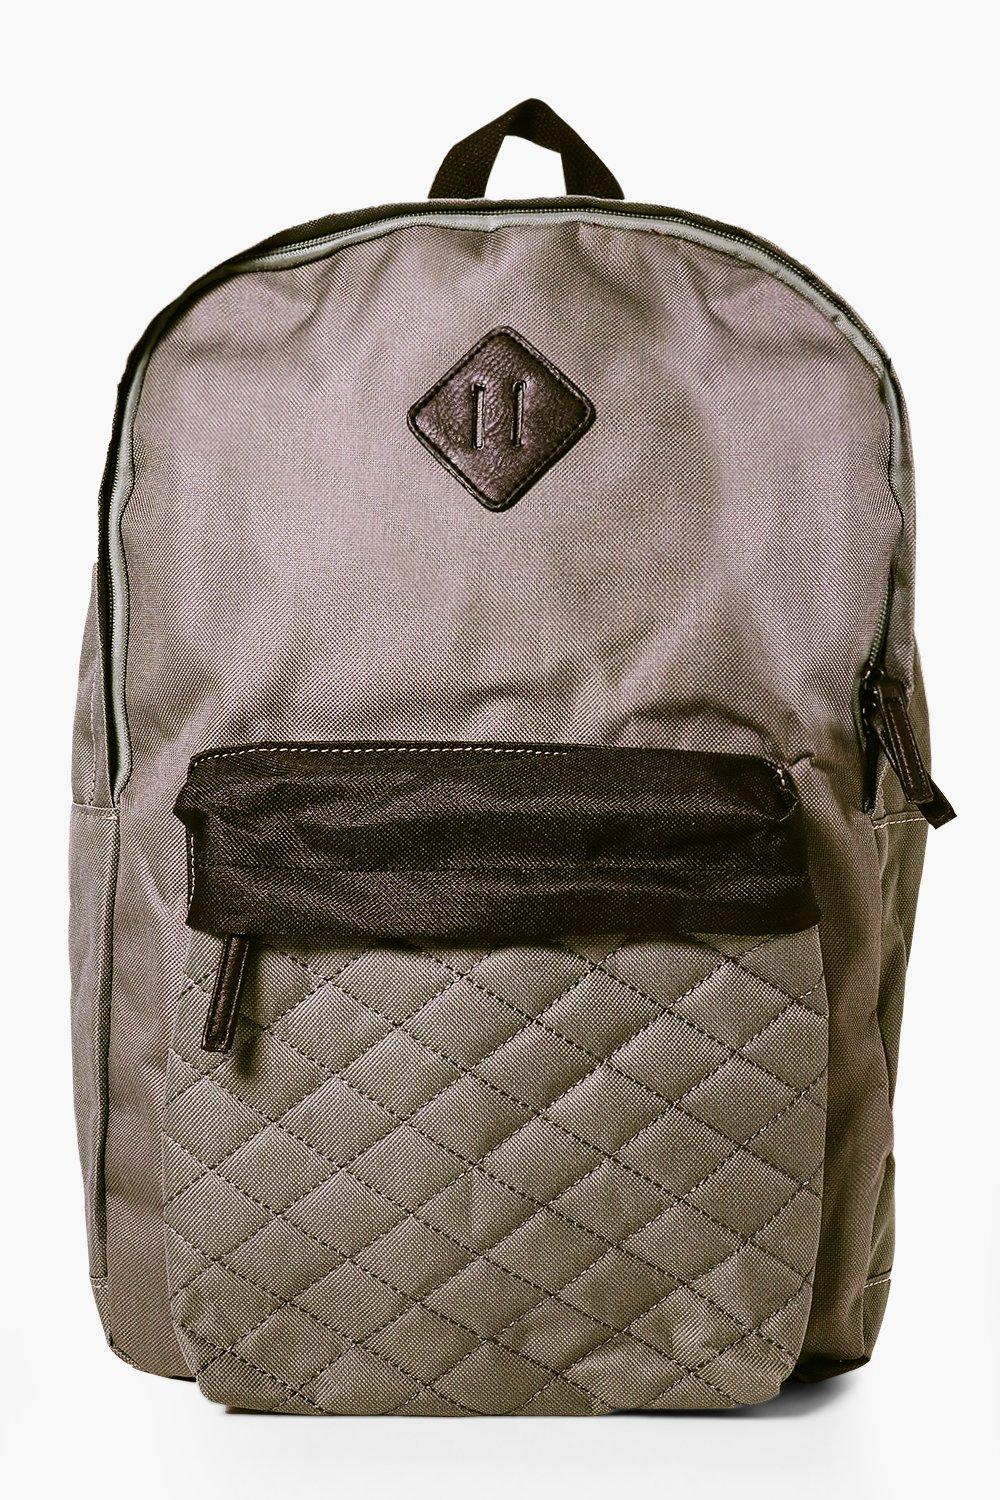 Panel Backpack - grey - Quilted Panel Backpack - g